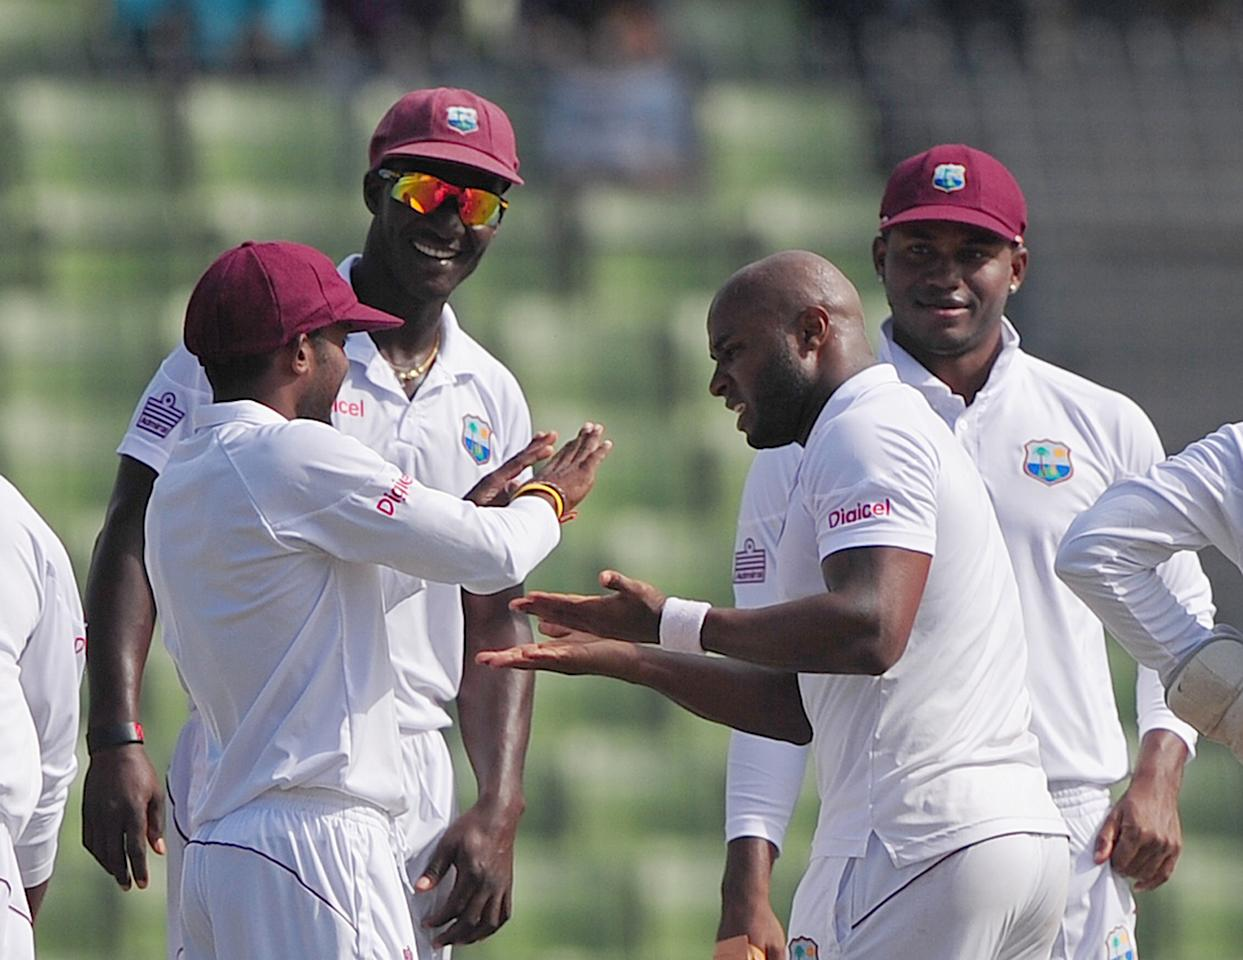 West Indies cricketer Tino Best (2nd R) celebrates with his teammates after the dismissal of Bangladesh cricket captain Mushfiqur Rahim during the fifth day of the first cricket Test match between Bangladesh and The West Indies at the Sher-e-Bangla National Cricket Stadium in Dhaka on November 17, 2012.  AFP PHOTO/ Munir uz ZAMAN